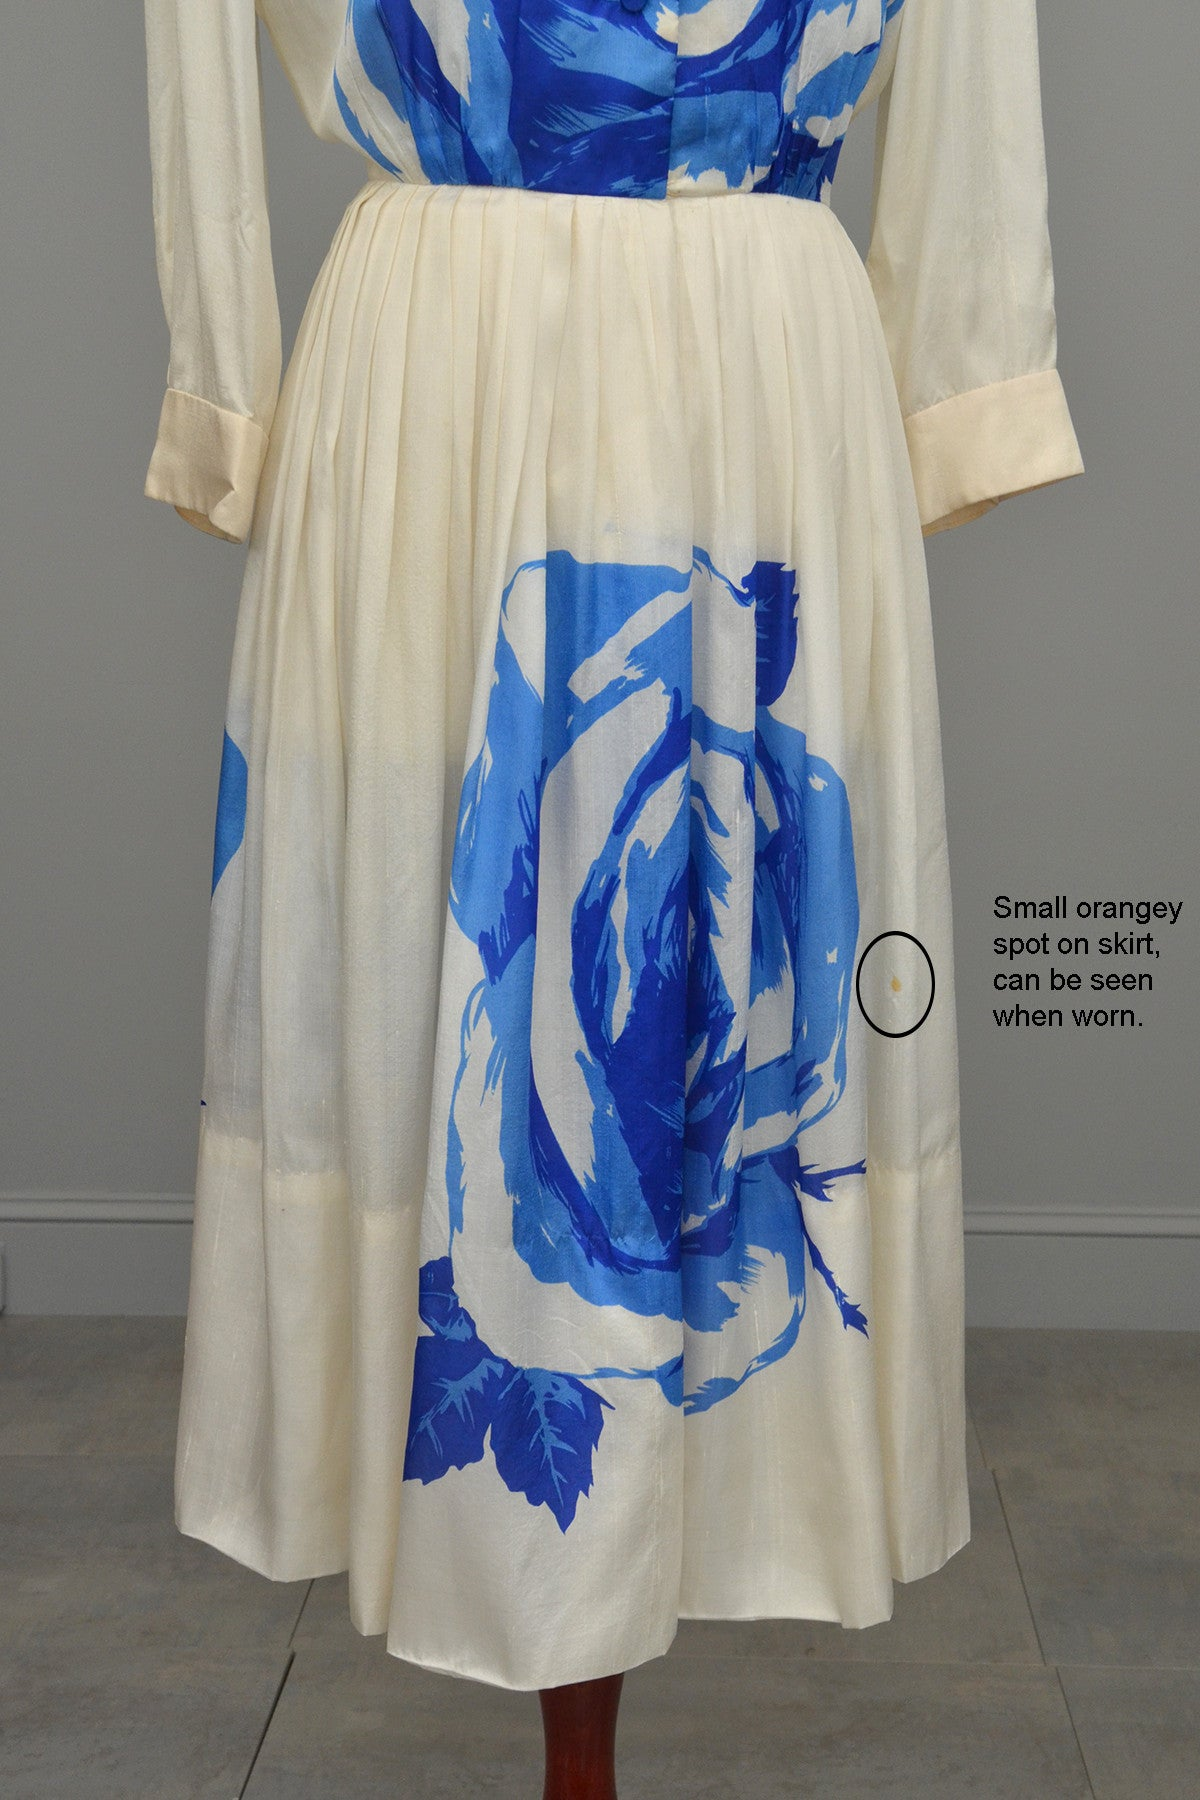 99dae5578f7 Reserved vintage blue white cabbage rose print silk dress jpg 1200x1800 Cabbage  rose print dress